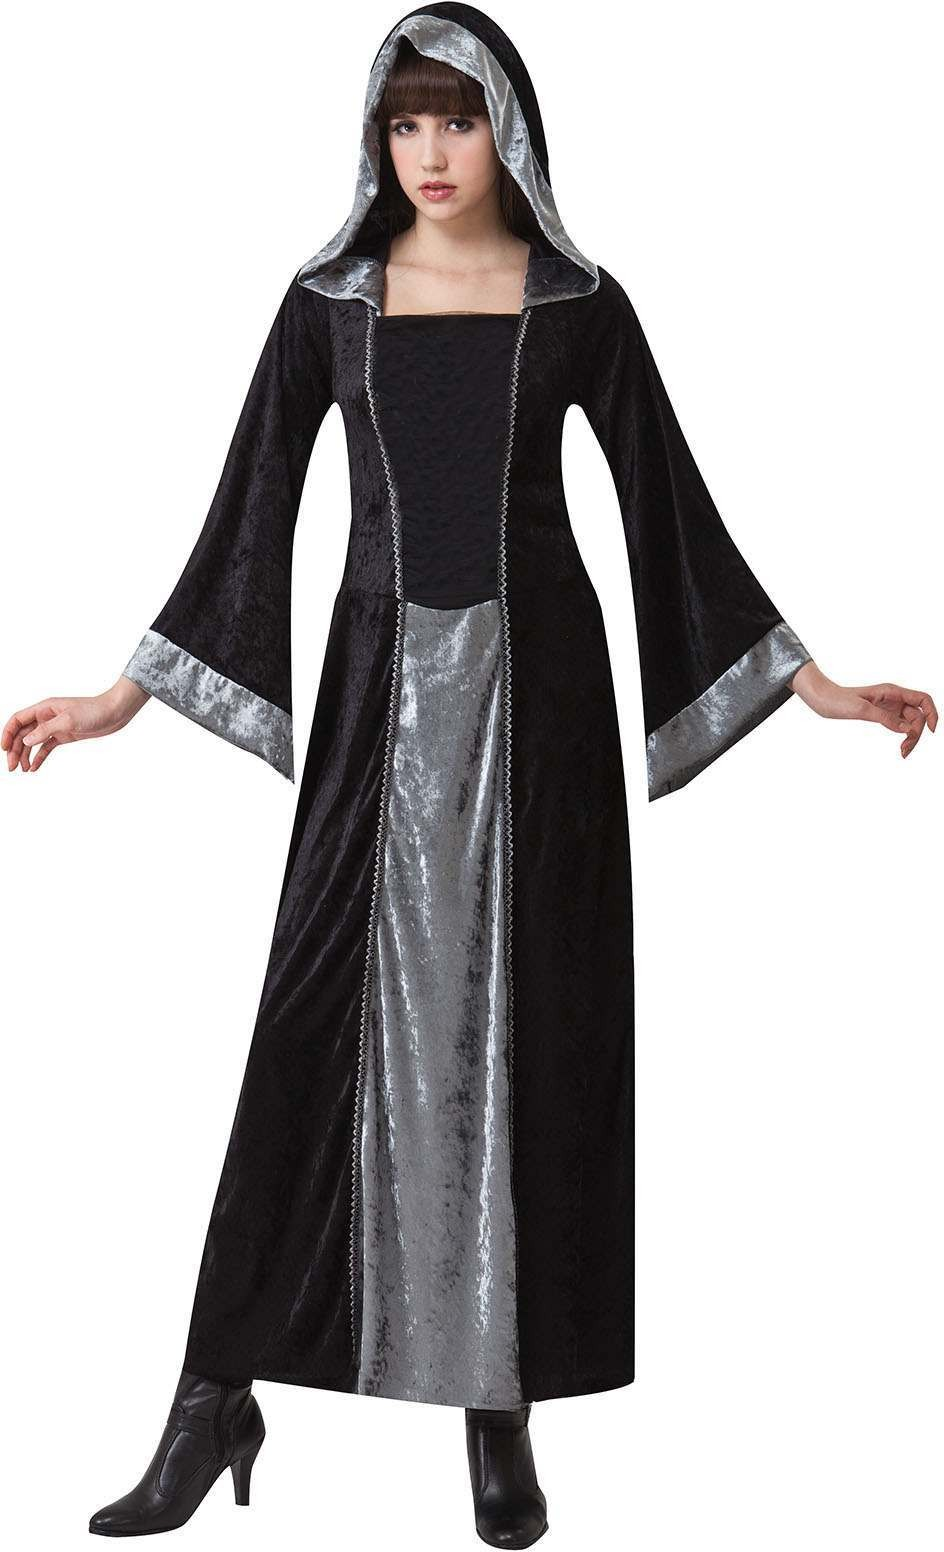 Ladies Black (Gothic Hooded Velvet Cloak) Fancy Dress Costume